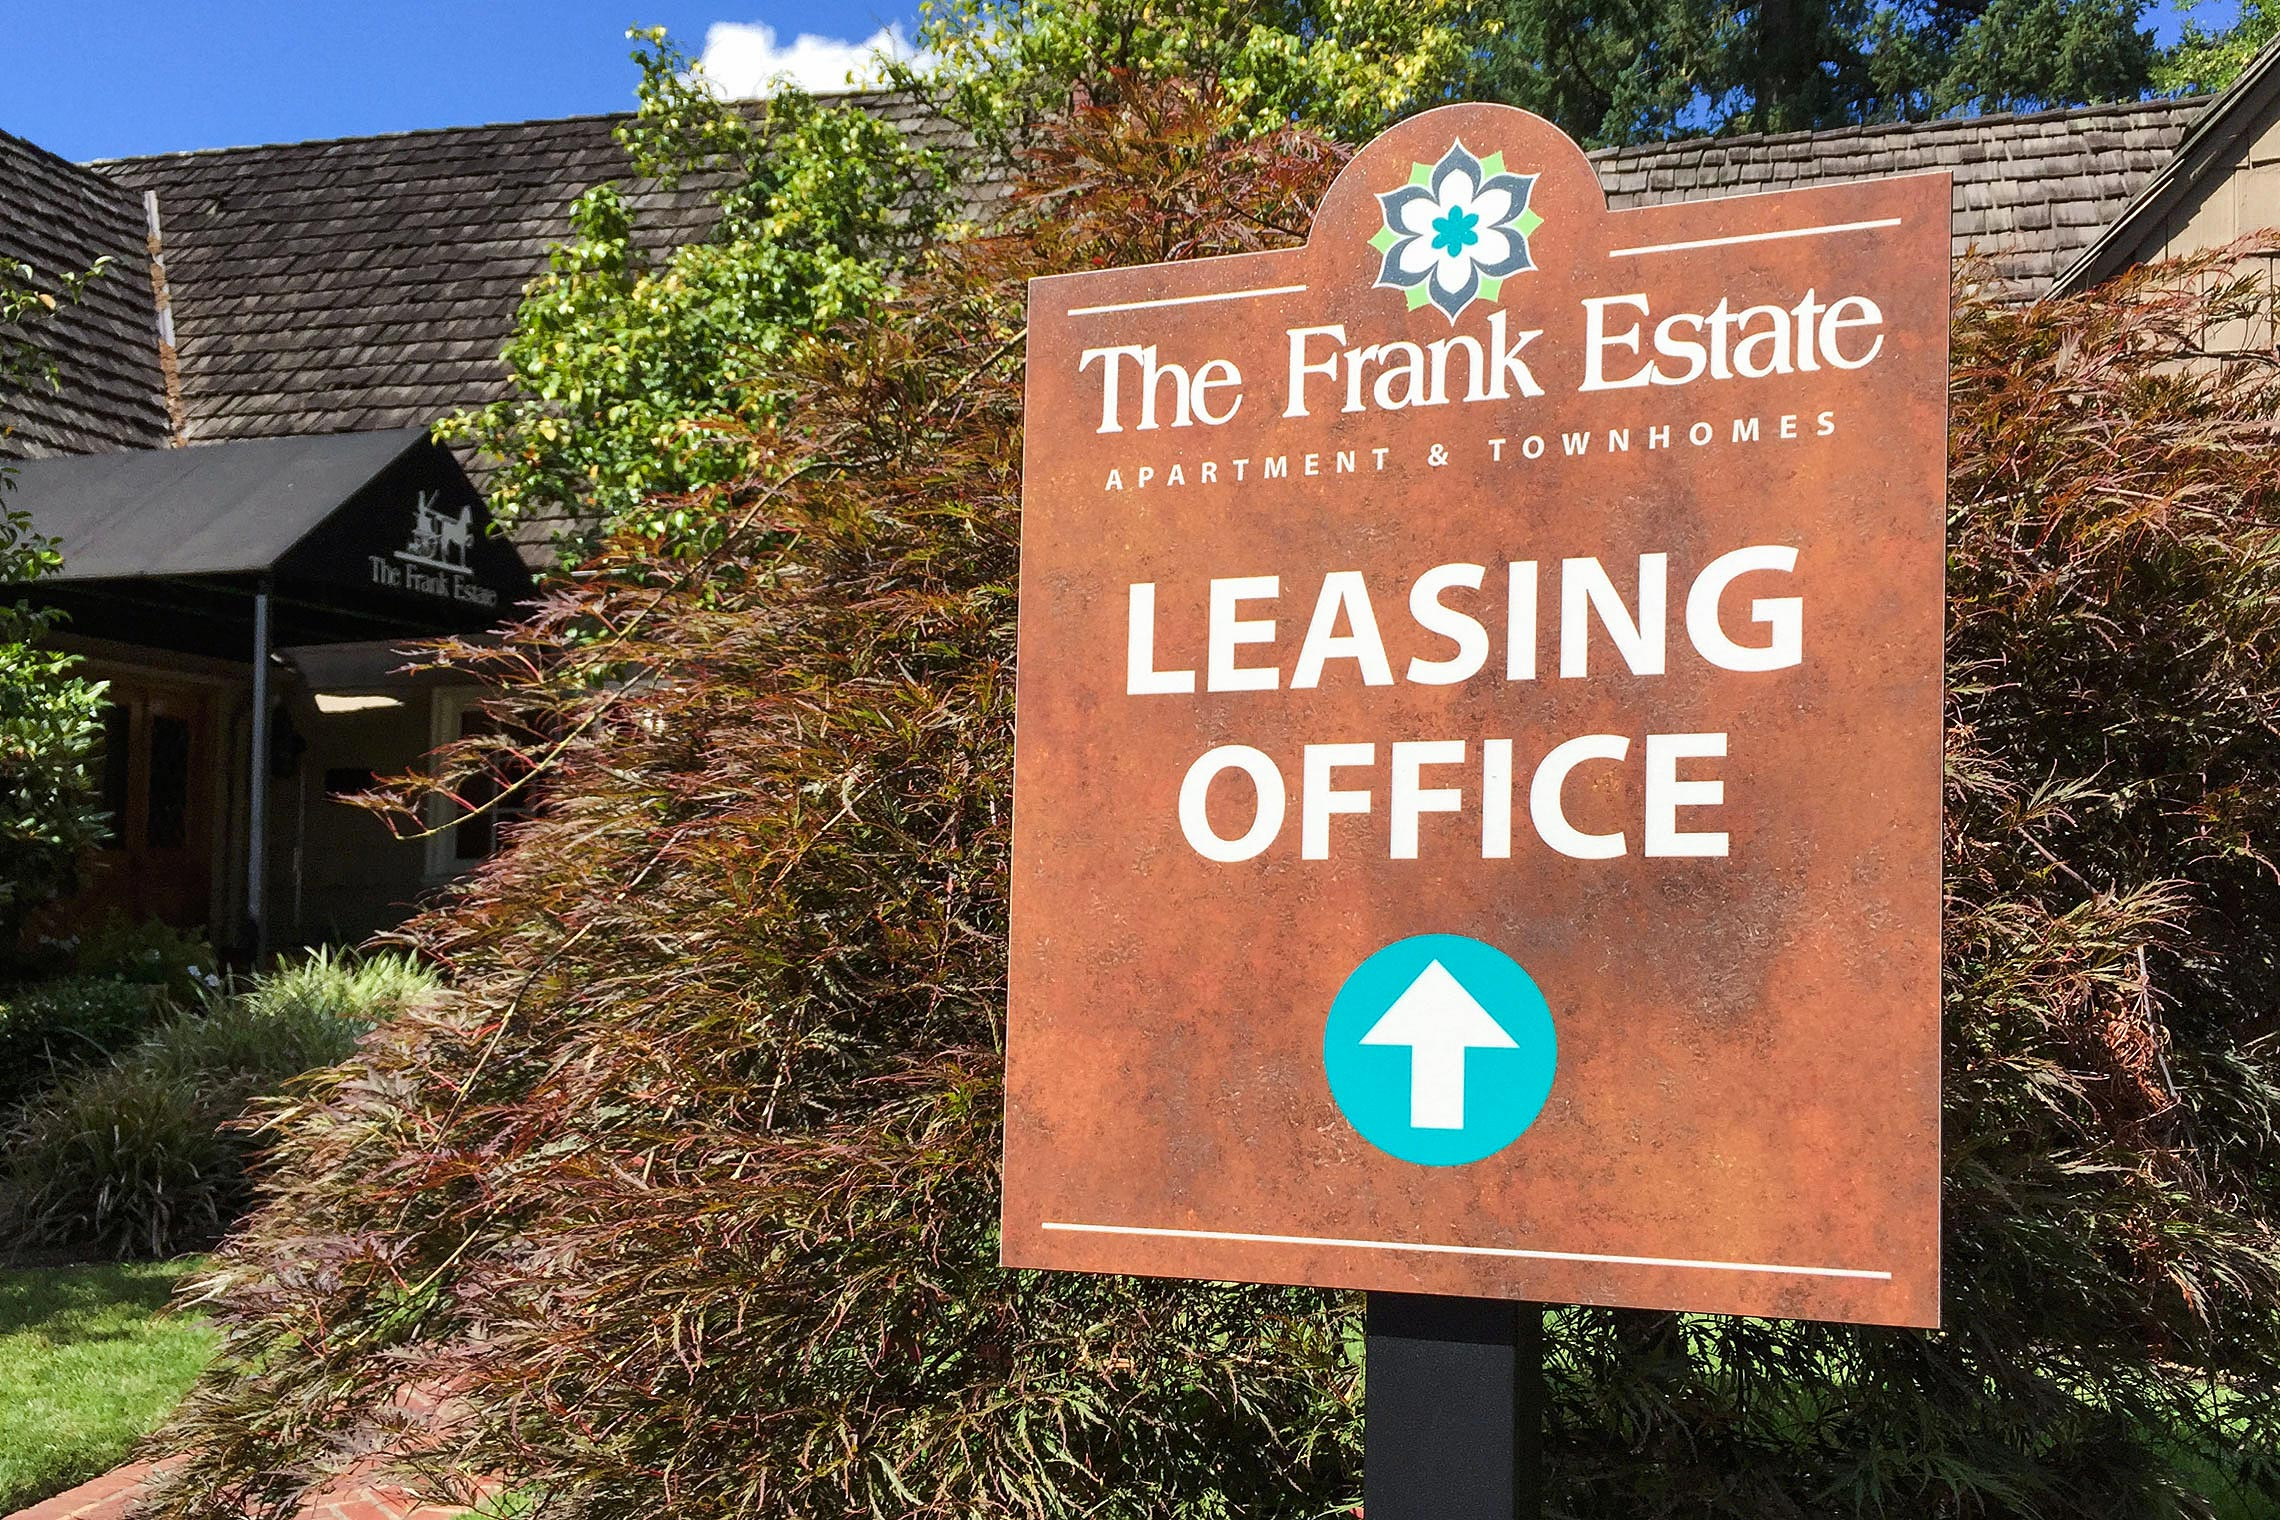 The Frank Estate Apartment & Townhomes Leasing Office Directional on Post